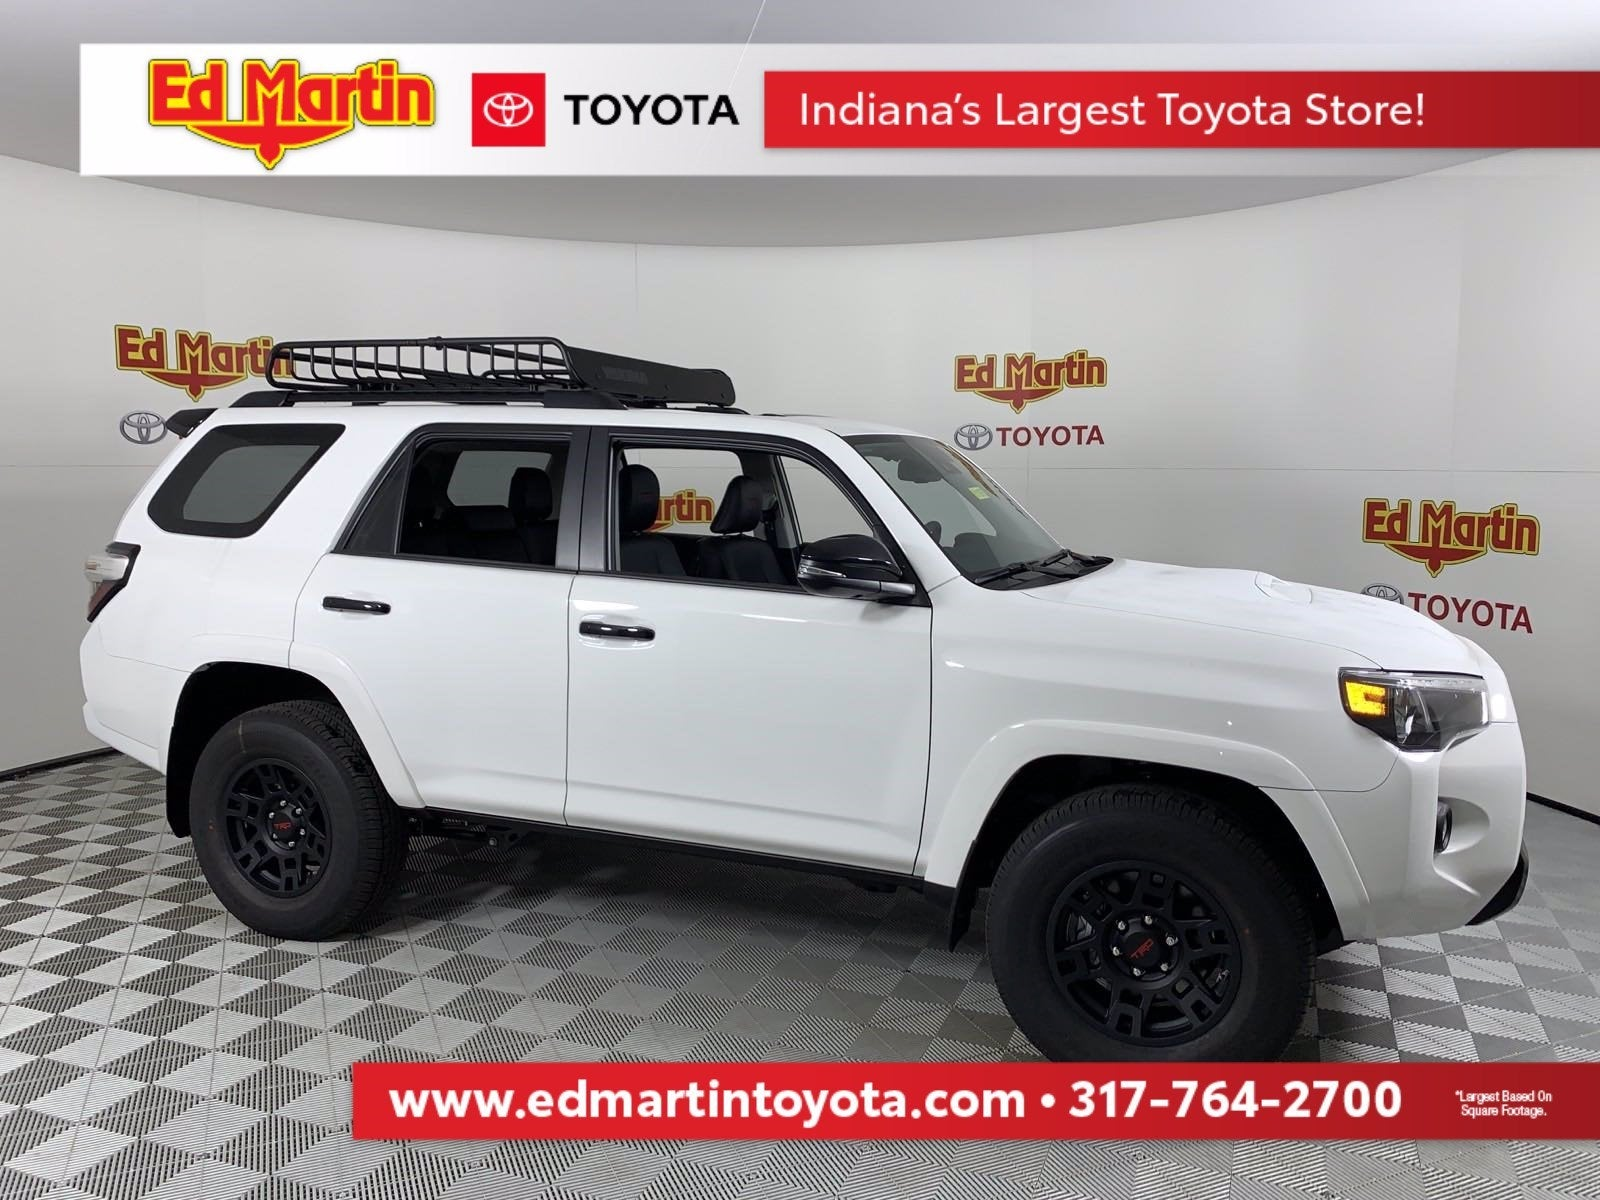 2021 Toyota 4runner Venture Indianapolis In Carmel Fishers Noblesville Indiana Jtehu5jr3m5876647